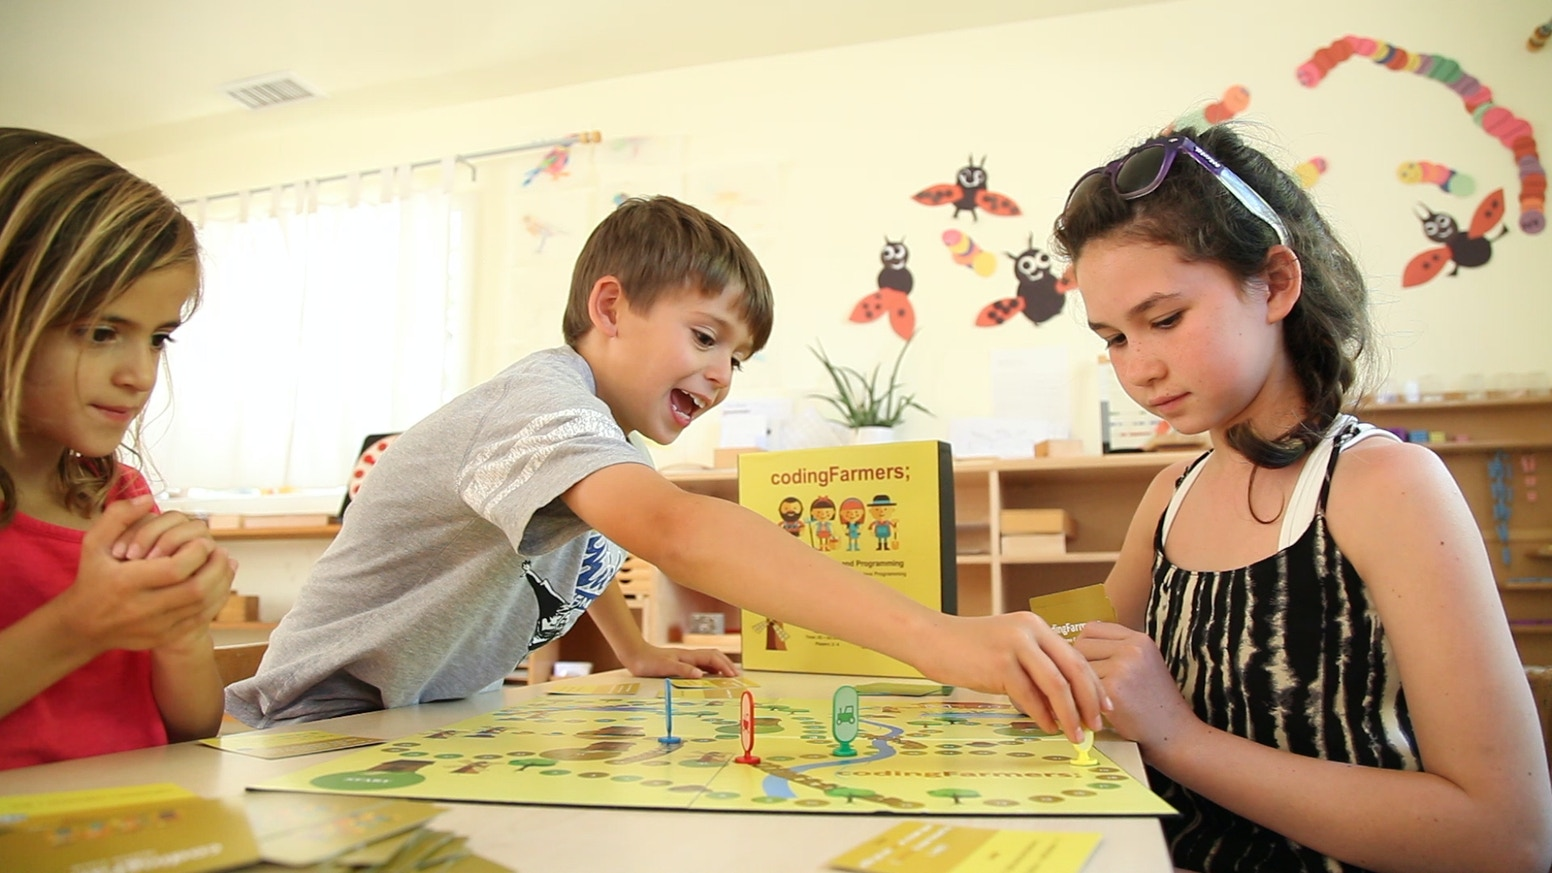 codingFarmers is a board game that teaches children (7+ years) real programming concepts in a fun and intuitive way.